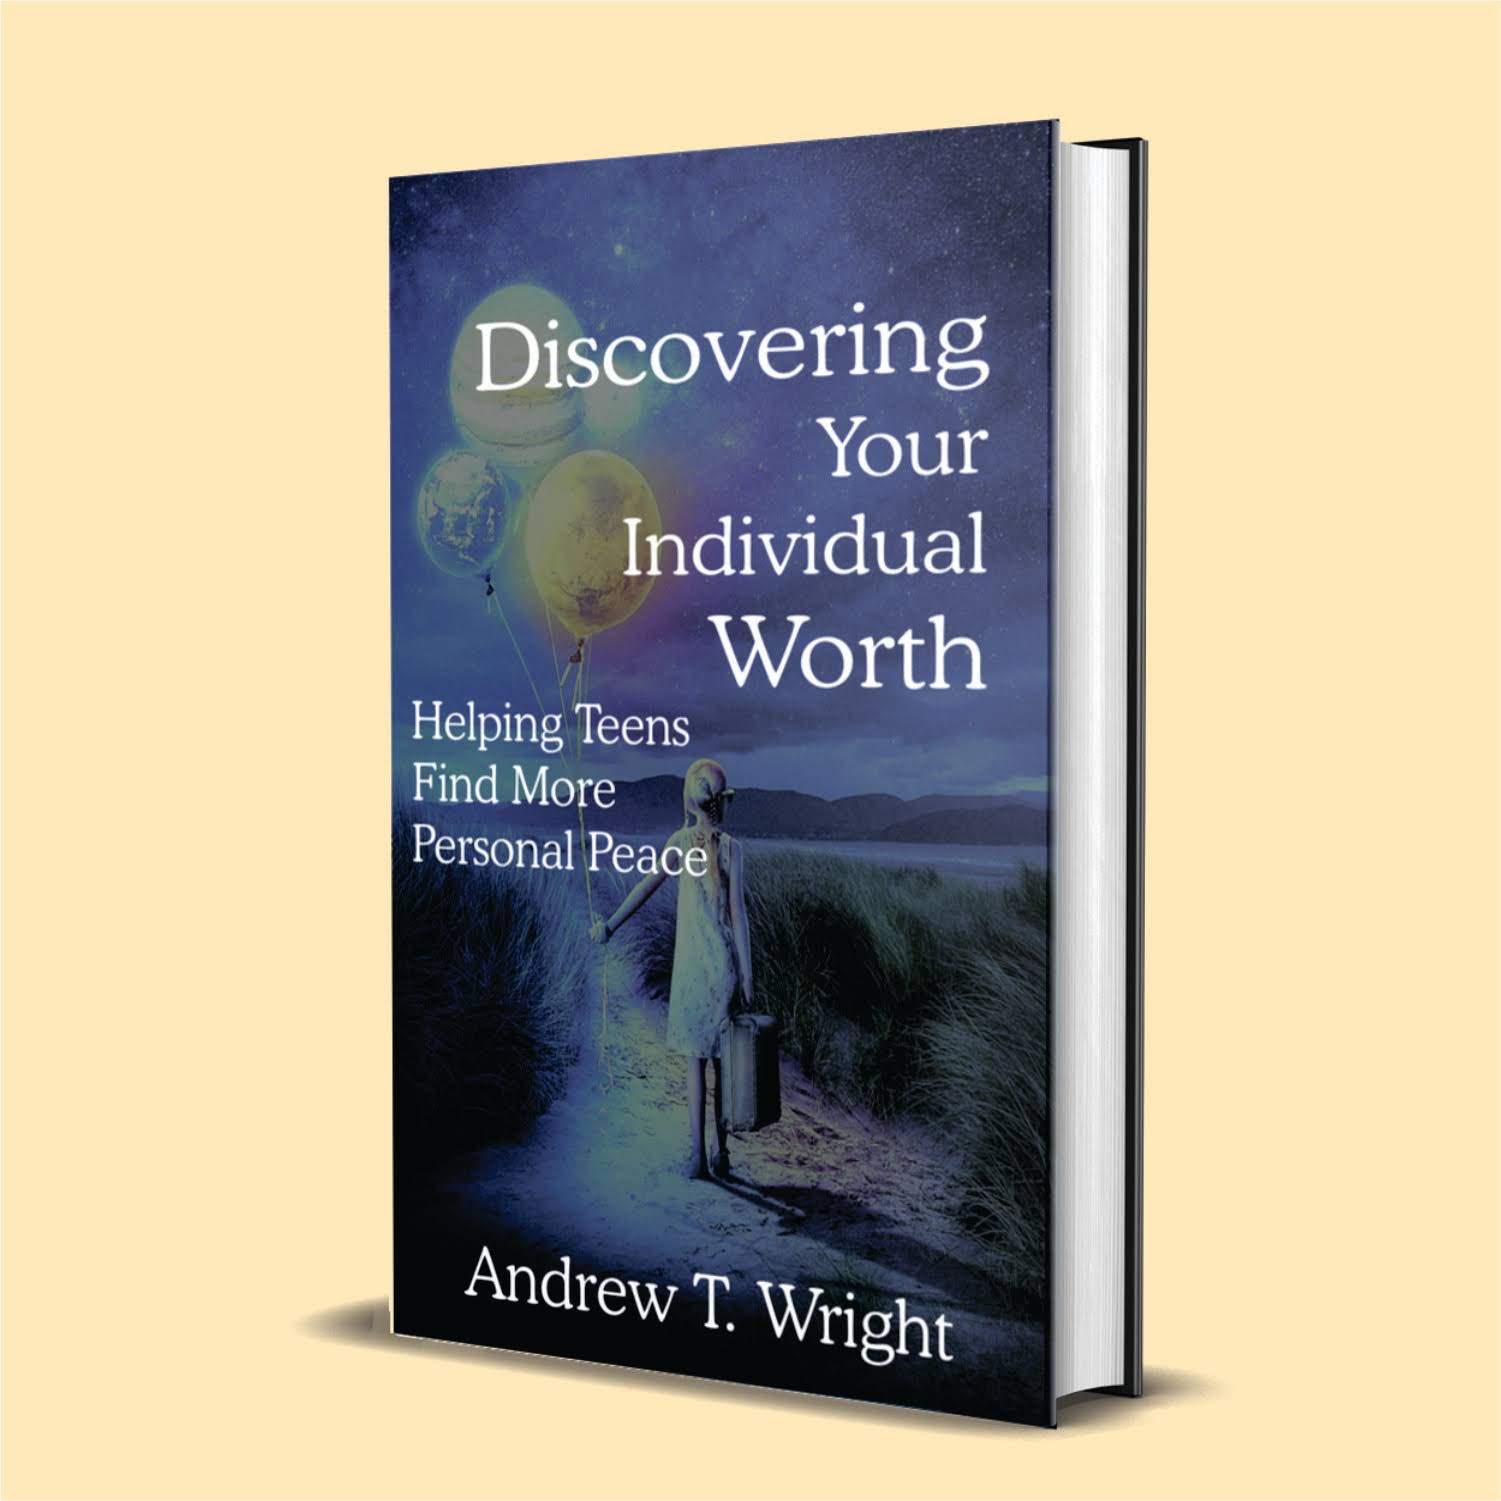 Discovering Your Individual Worth: Helping Teens Find More Personal Peace. By Andrew T. Wright